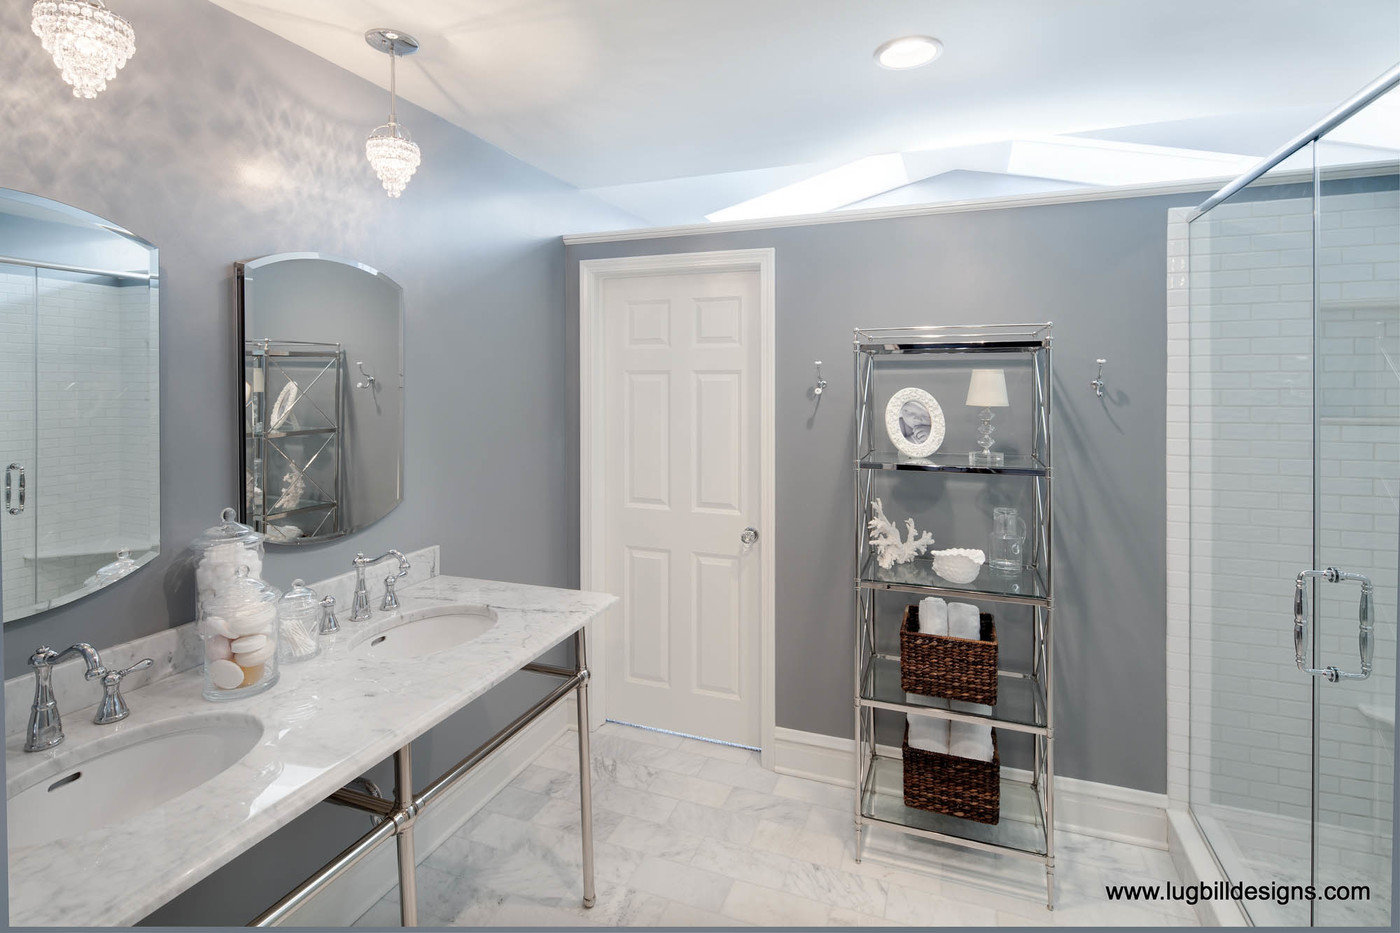 Designer Bathrooms By Erica Lugbill Lugbill Designs At